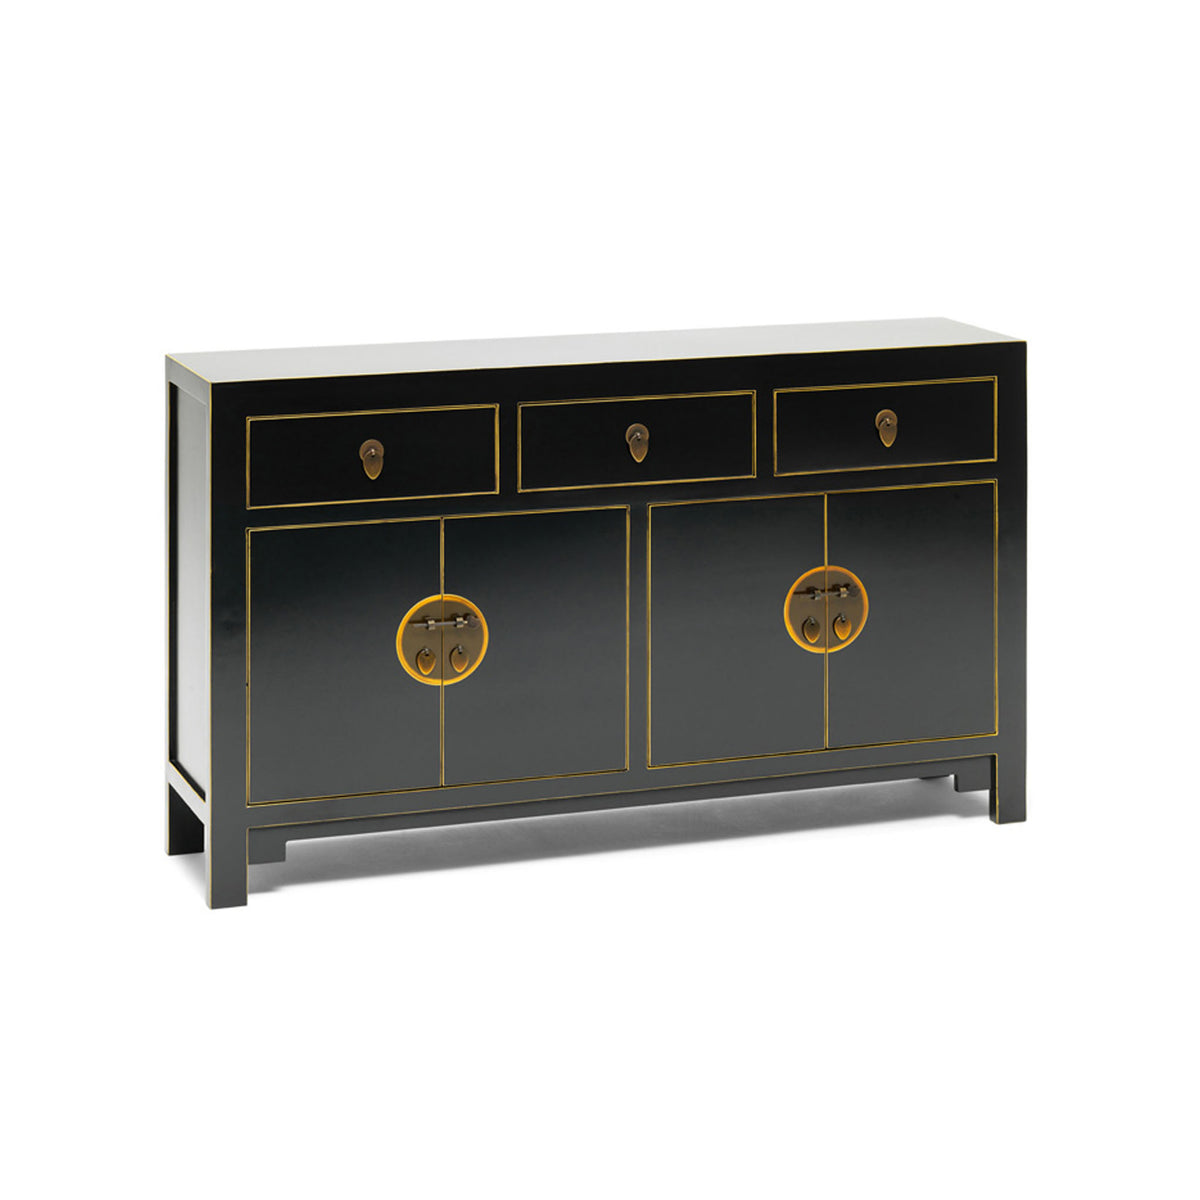 The Nine Schools Qing Black and Gilt Large Sideboard by Roseland Furniture